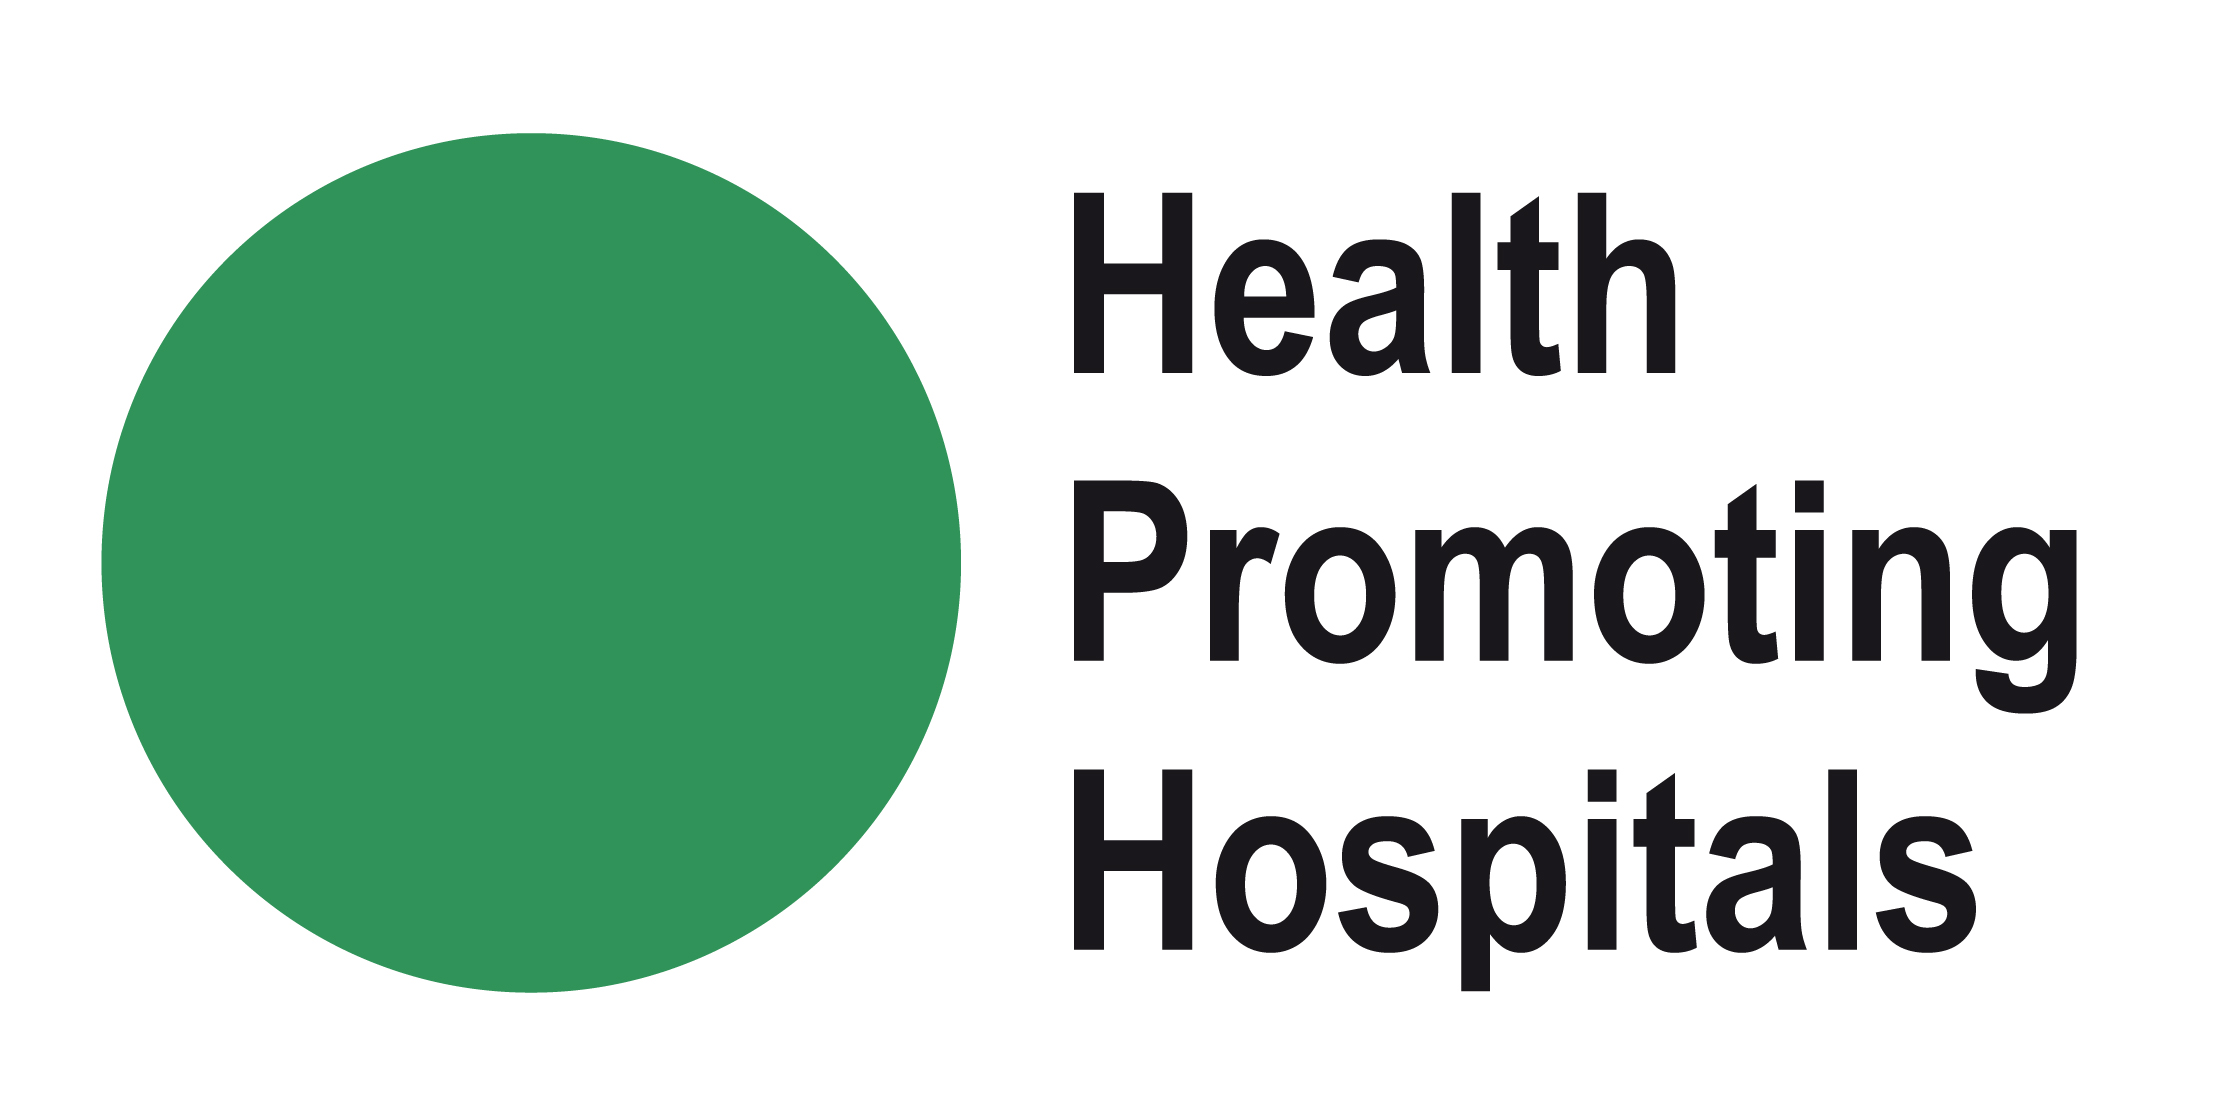 Health Promoting Hospitals